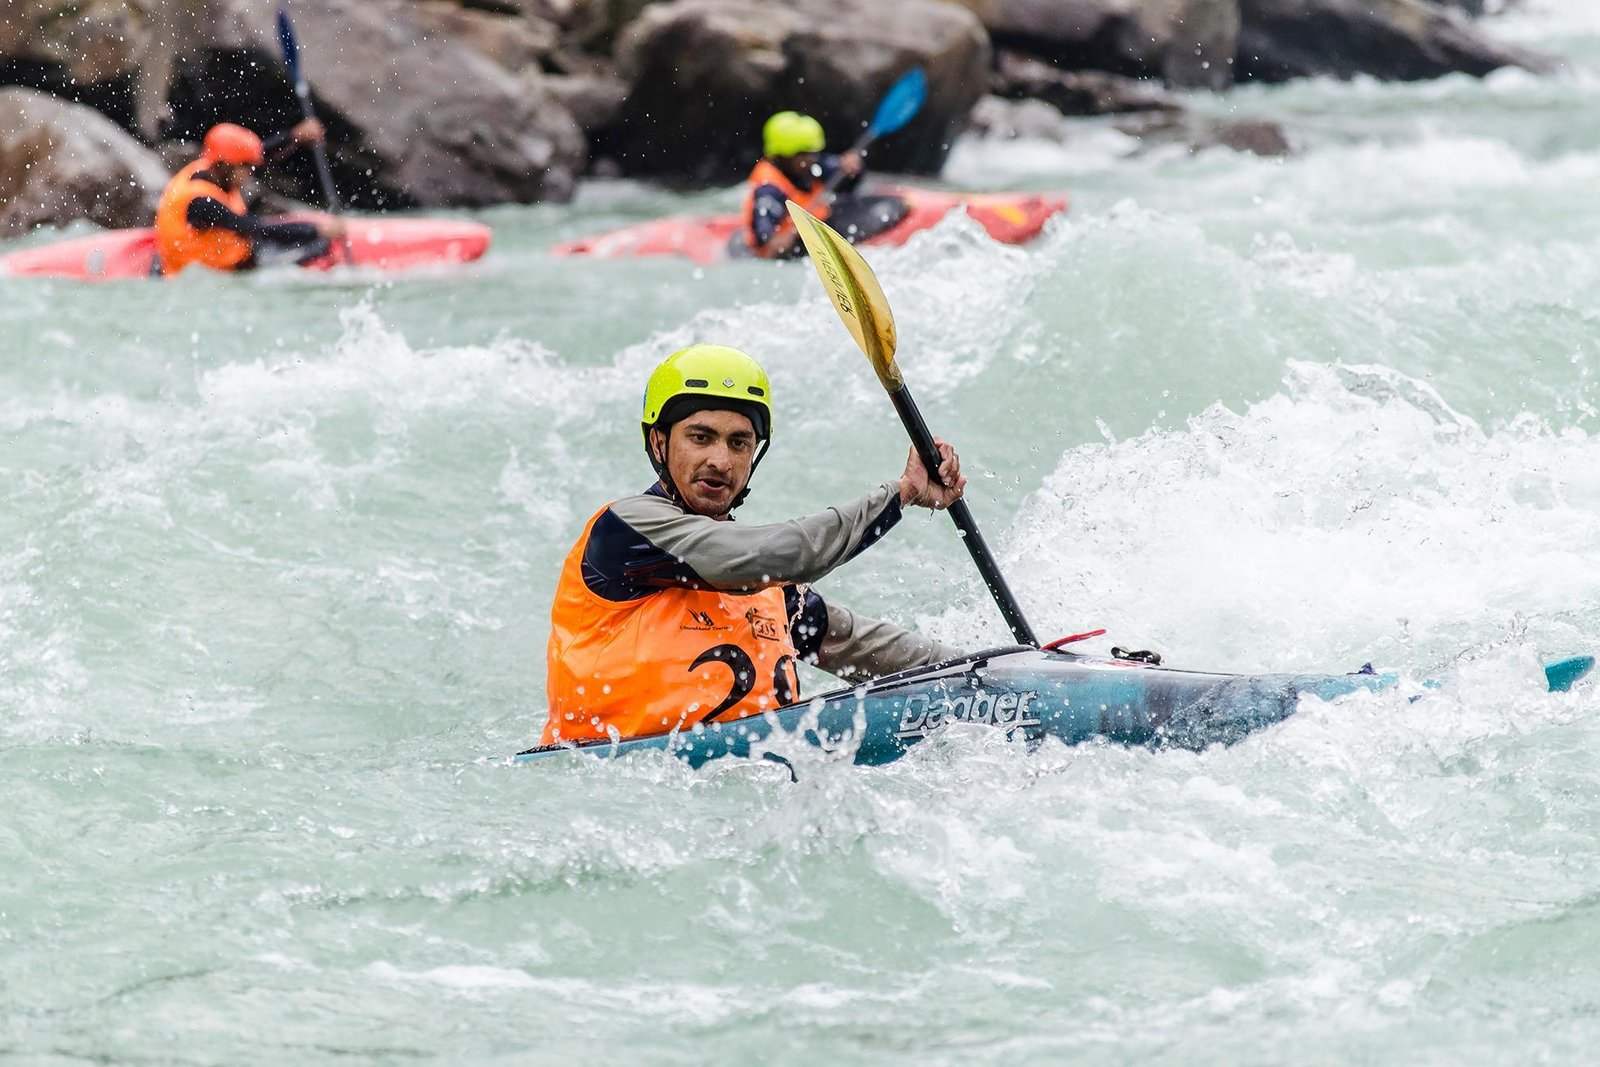 Rishi Rana - Rishi Rana has been kayaking the upper reaches of Ganga for over half a decade now.Having developed his Kayaking skills on his home turf in Rishikesh, as well as through Kayaking competitions, Rishi has over 15 medals to his credit and won the title of best Indian paddler male at the Ganga Kayak Festival 2016 and 2018.